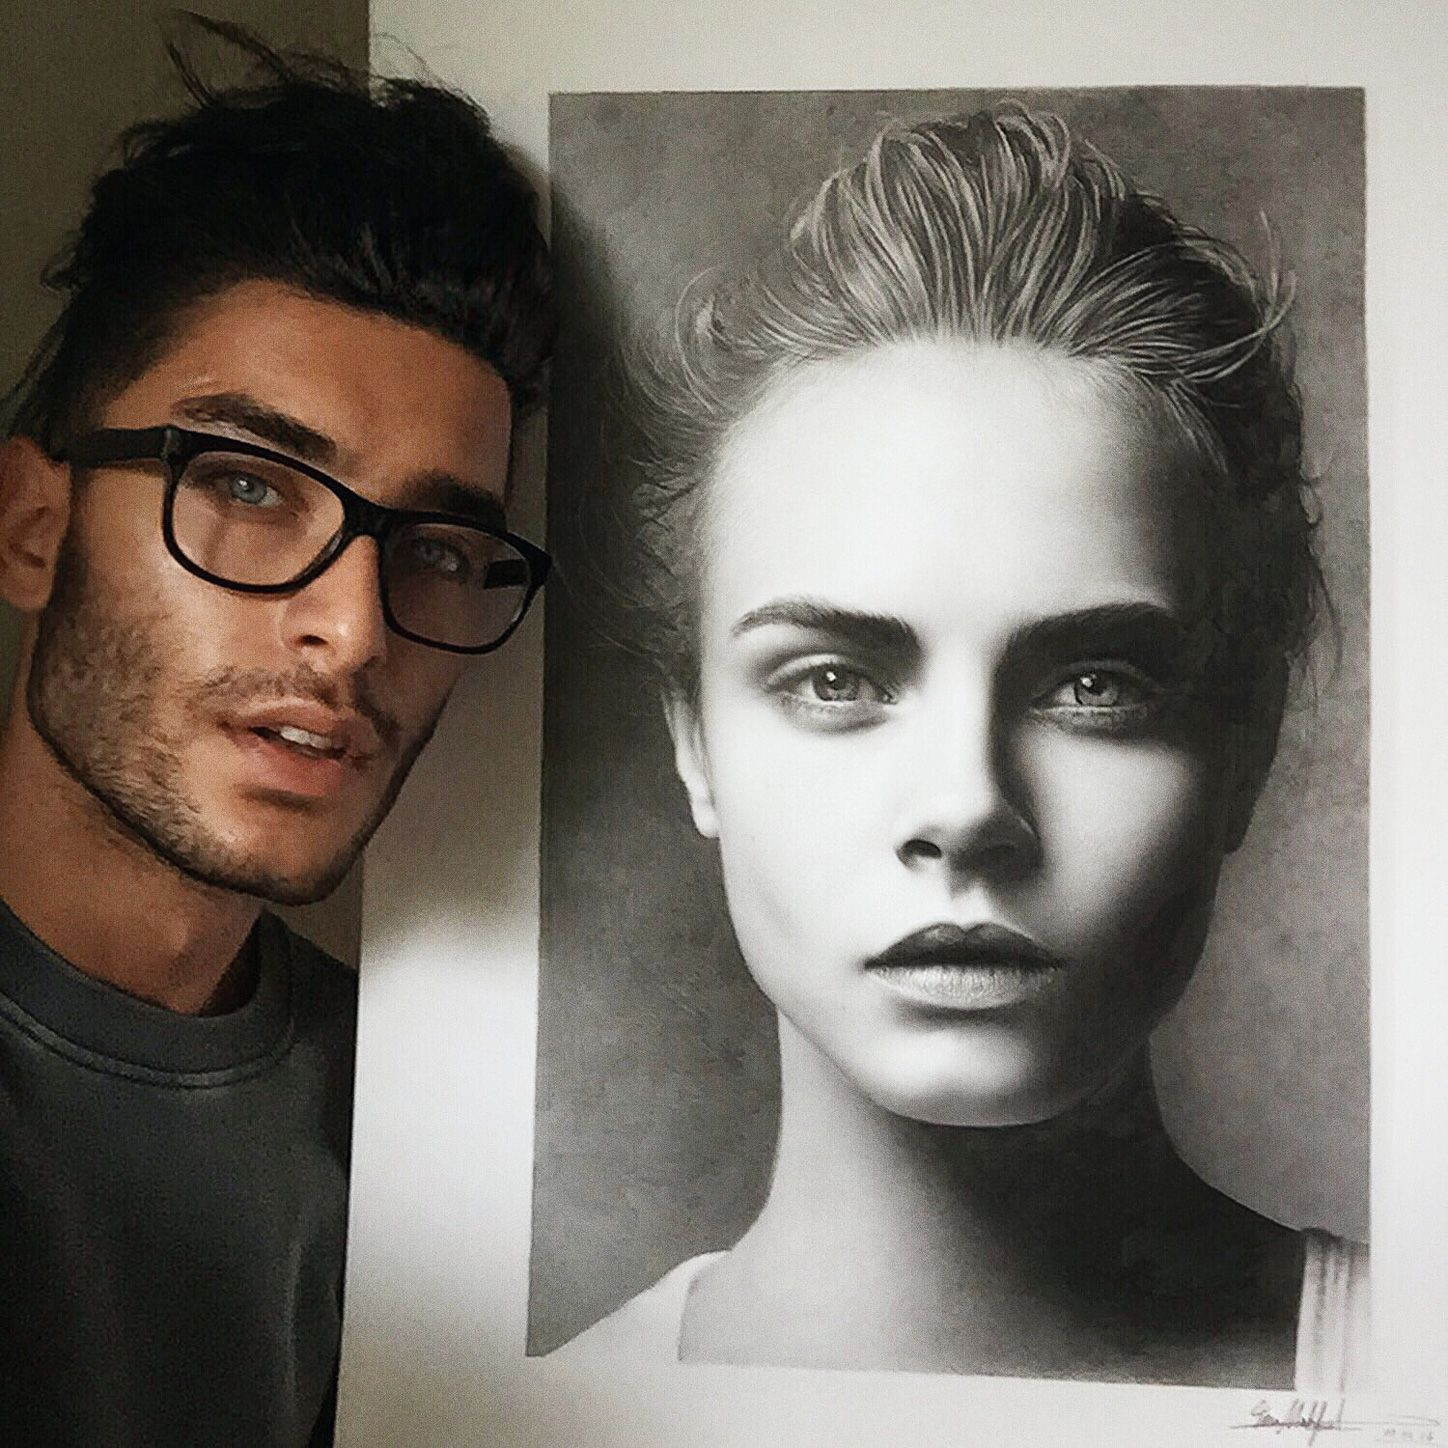 Interview of Toni Mahfud. Illustrator, photographer, model, fashion blogger: A modern artist. #CaraDelevingne